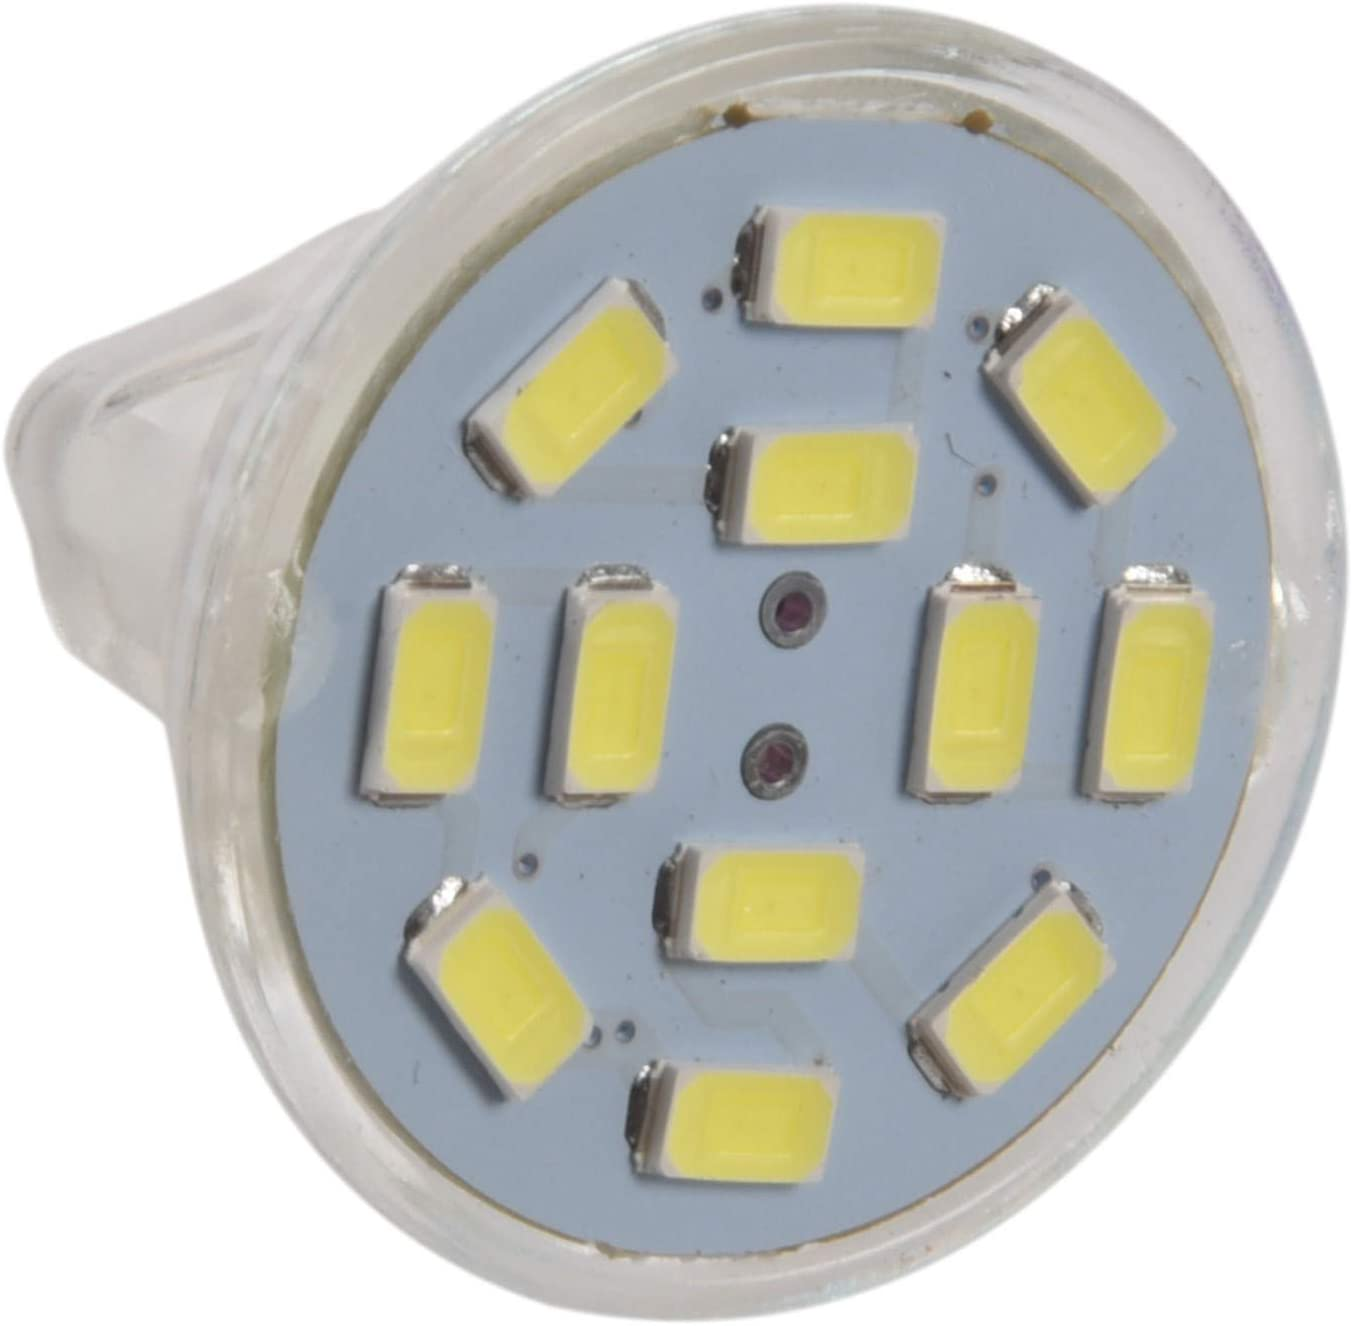 WOVELOT 6W Proyector Led Gu4 (Mr11) Mr11 12 Smd 5730 570 Lm Dc 12V, Blanco